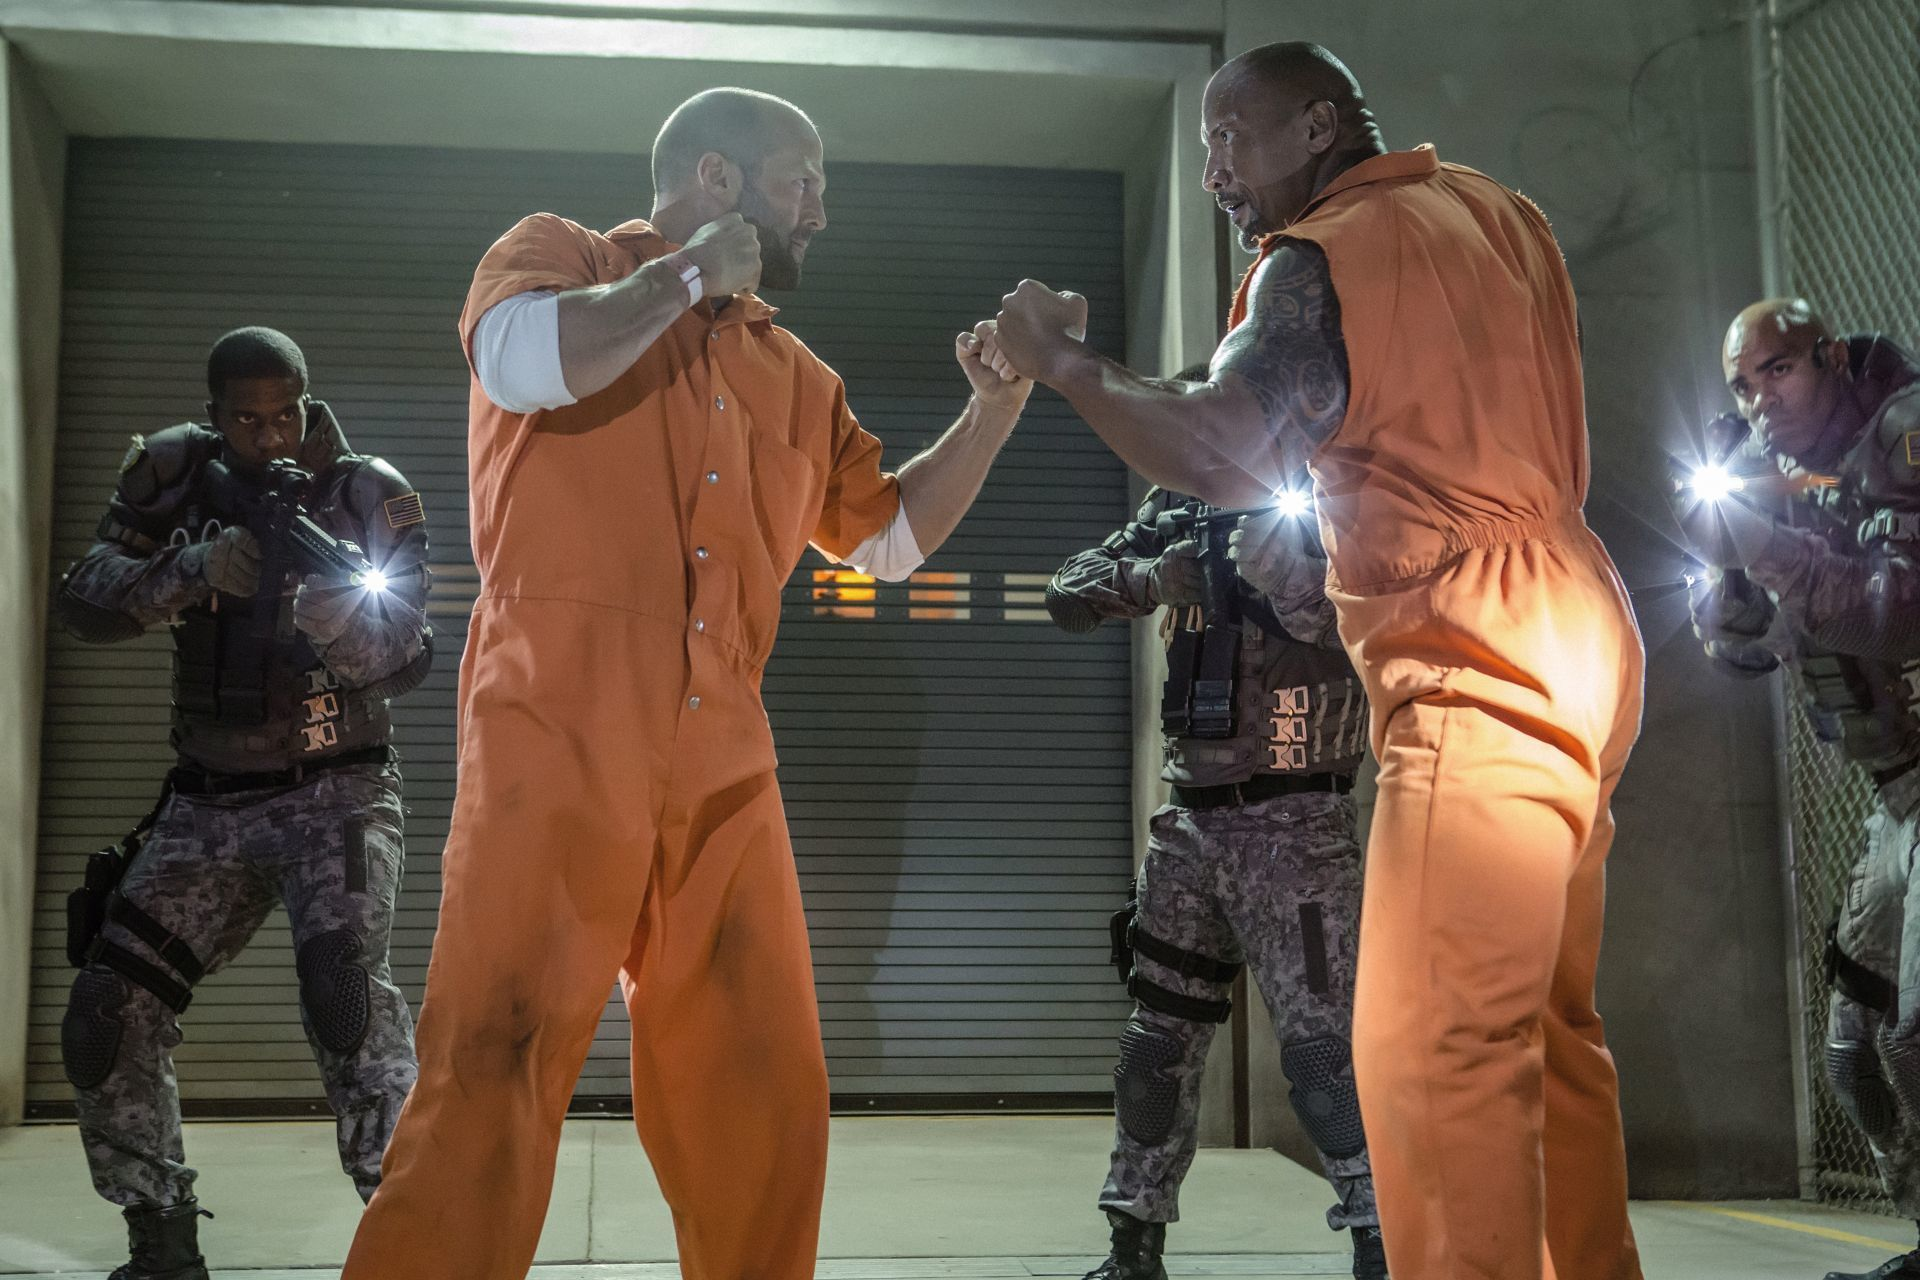 Fast and Furious Continues World Domination with Dwayne Johnson & Jason Statham Spinoff